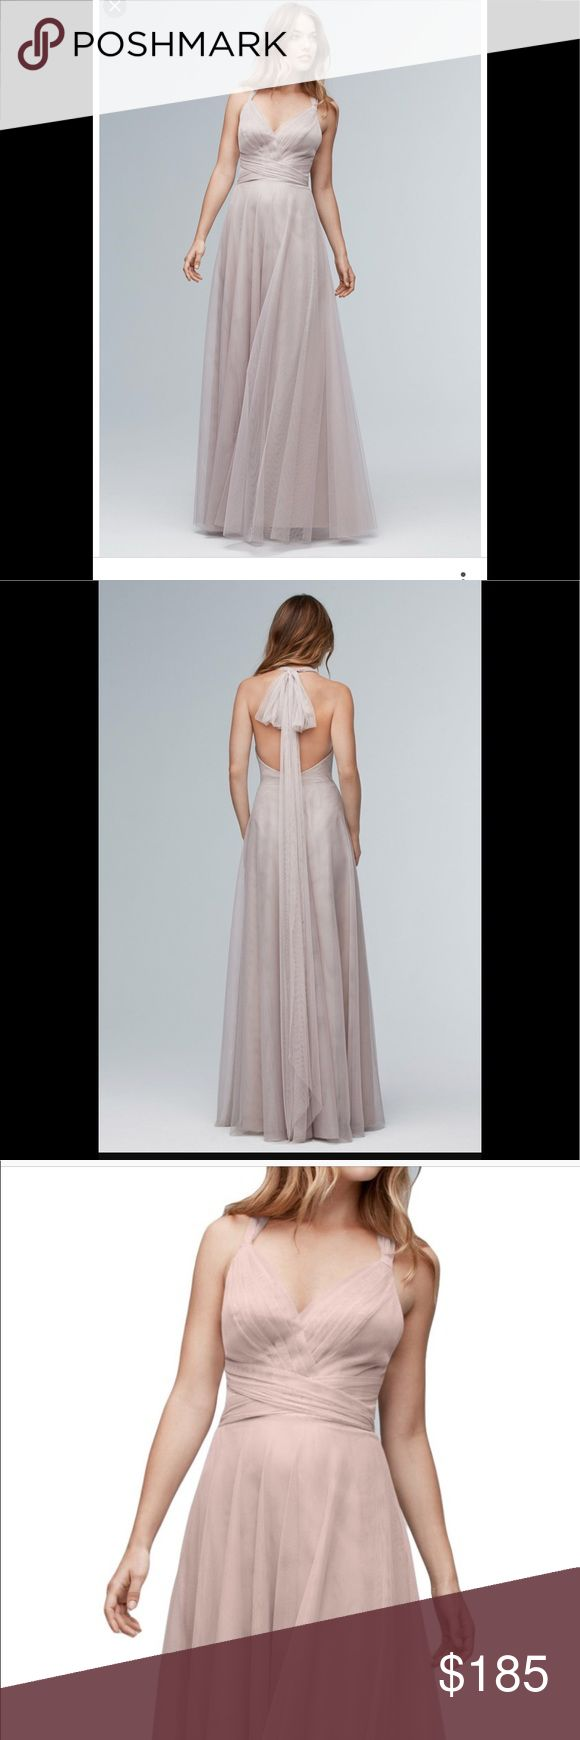 """Watters & Watters latte bridesmaid dress💍 This dress is AMAZING! Only worn once, excellent condition. Back can be tied in any way to change up the look and perfect for any formal occasion. I'm 5'5 and this dress was hemmed a half inch and was the perfect length and just skimmed the floor with 4"""" heels. Must have!! Watters & Watters Dresses Wedding"""